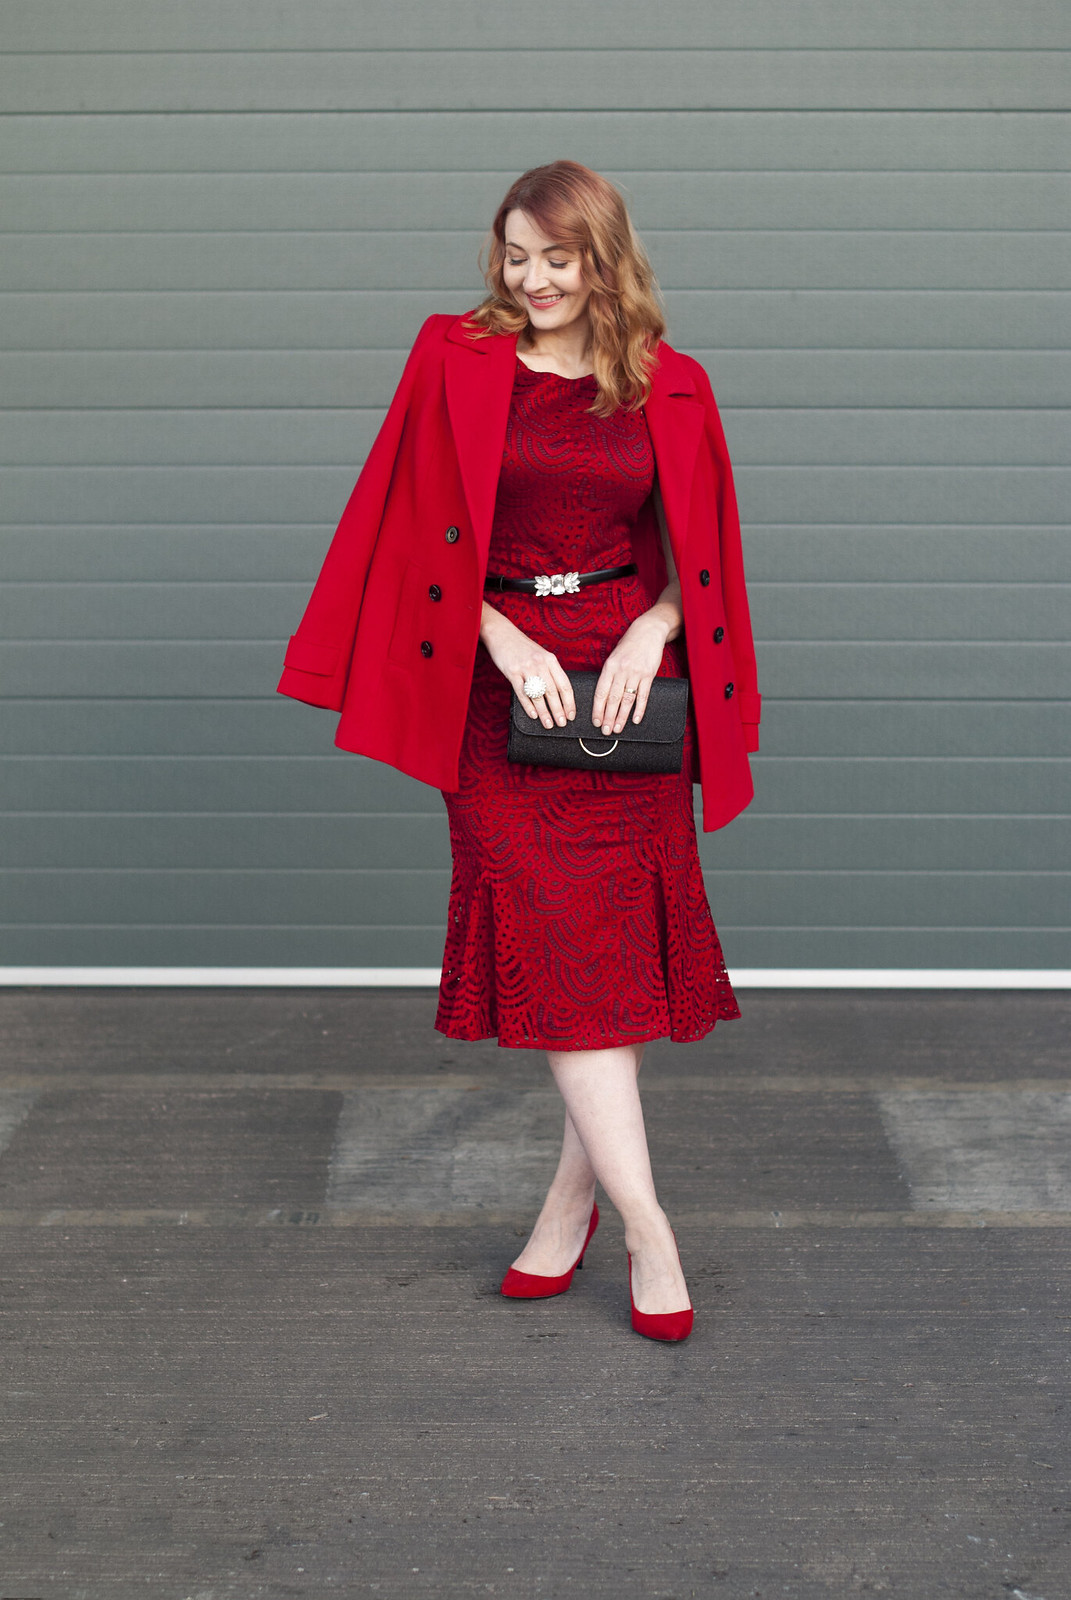 Christmas party or New Year's Eve party outfit - red lace midi dress with red pea coat and red heels   Not Dressed As Lamb, over 40 style